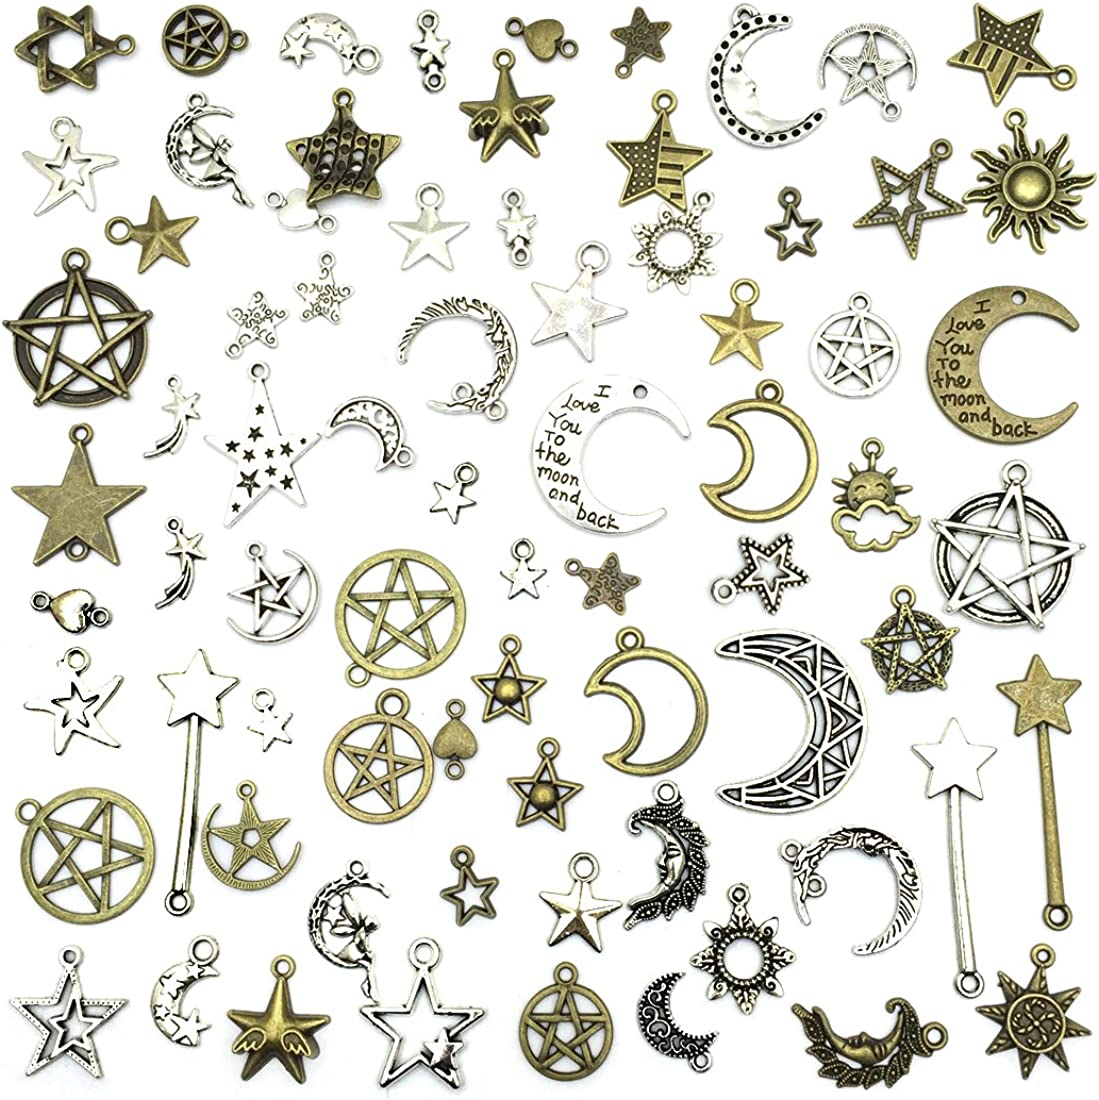 The Best Wiccan Home Charms